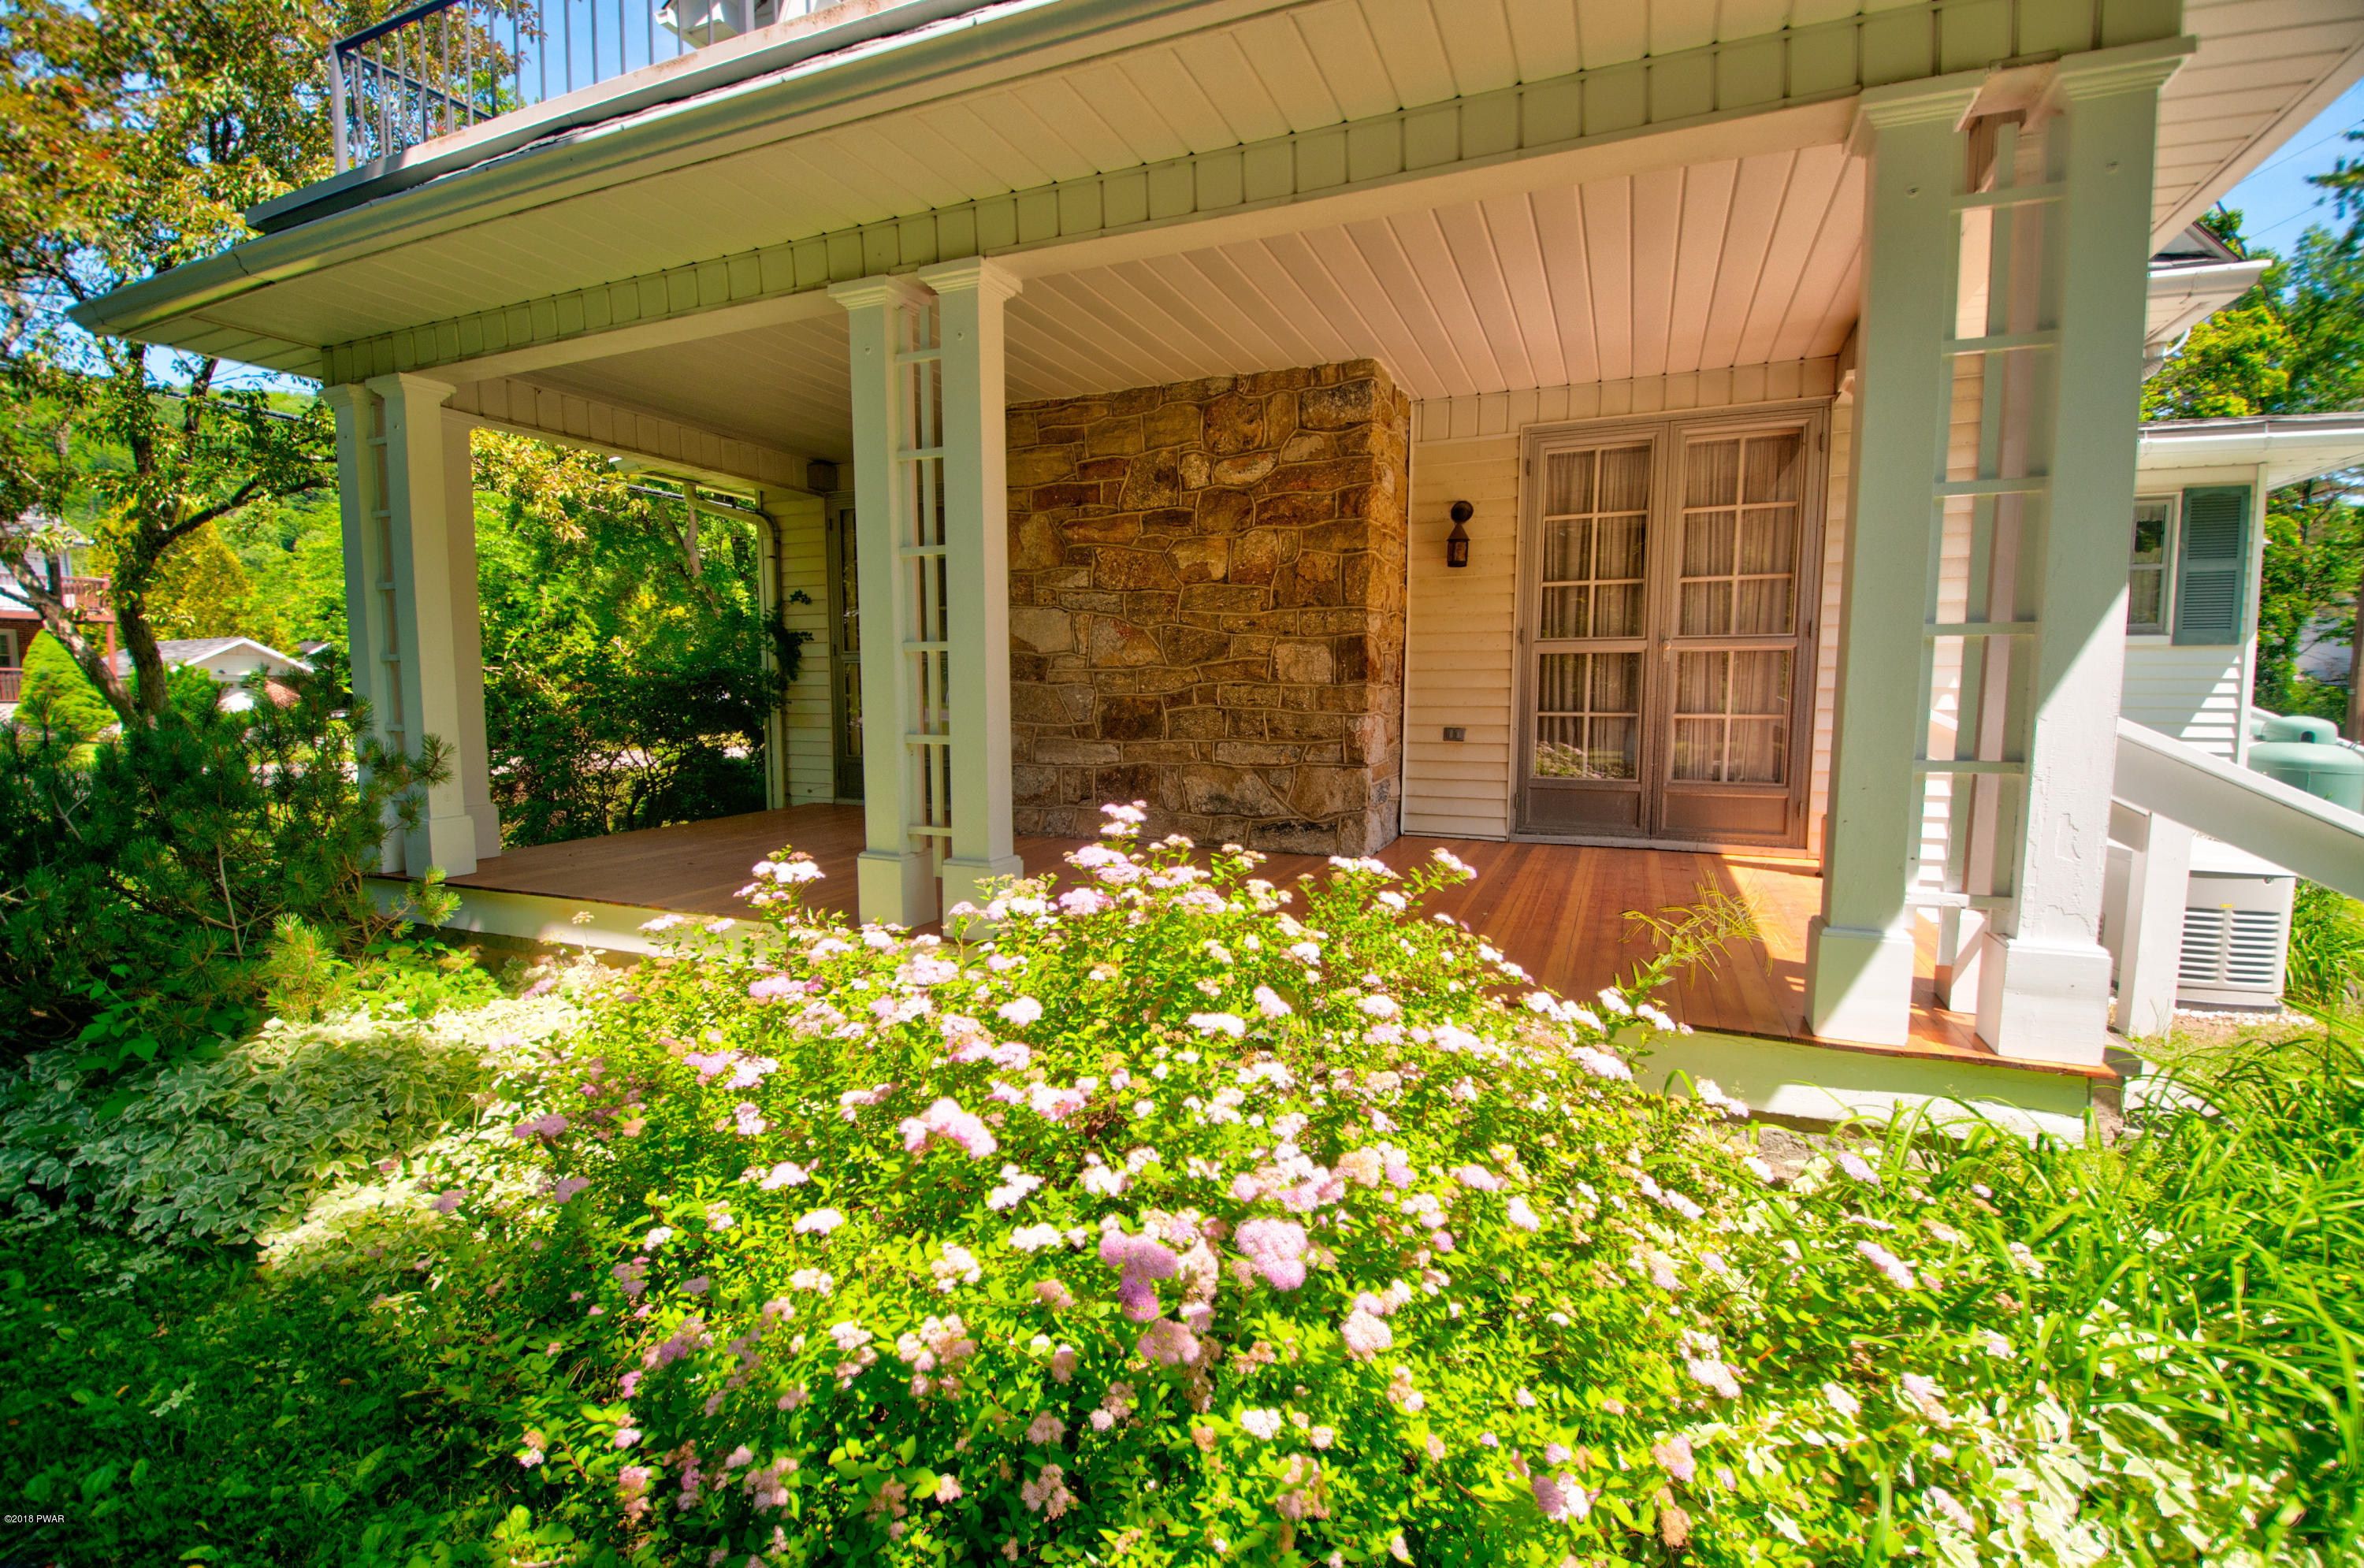 Listing: 260 S Sterling Rd, South Sterling, PA.| MLS# 18-3005 ...